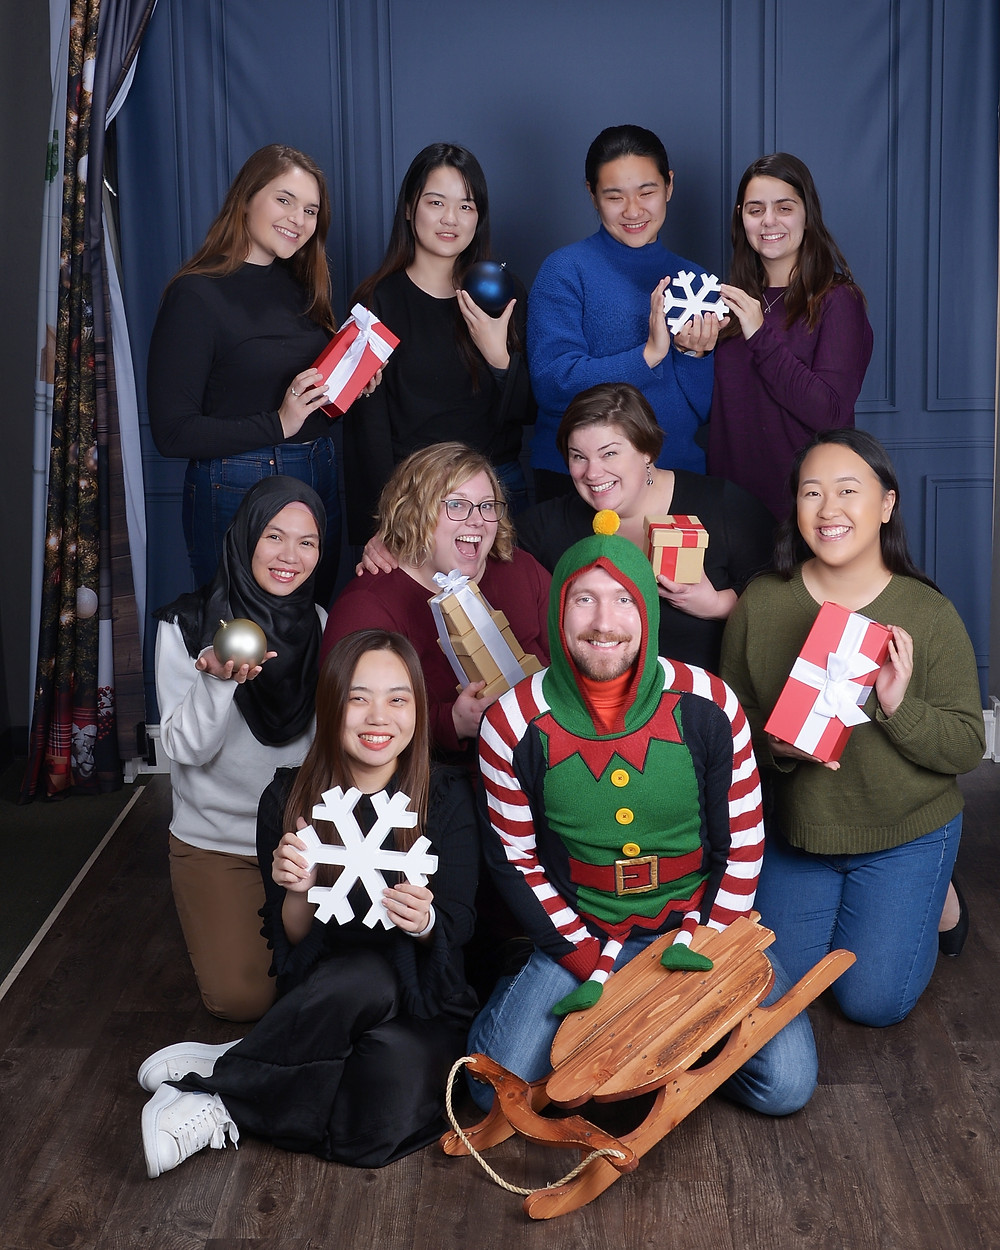 Ten diverse members of the TTP team are huddled in a group for the winter holiday photo. Everyone is holding a present, ornament, snowflake, or other winter-themed item, and one guy is dressed in a red and green elf suit.